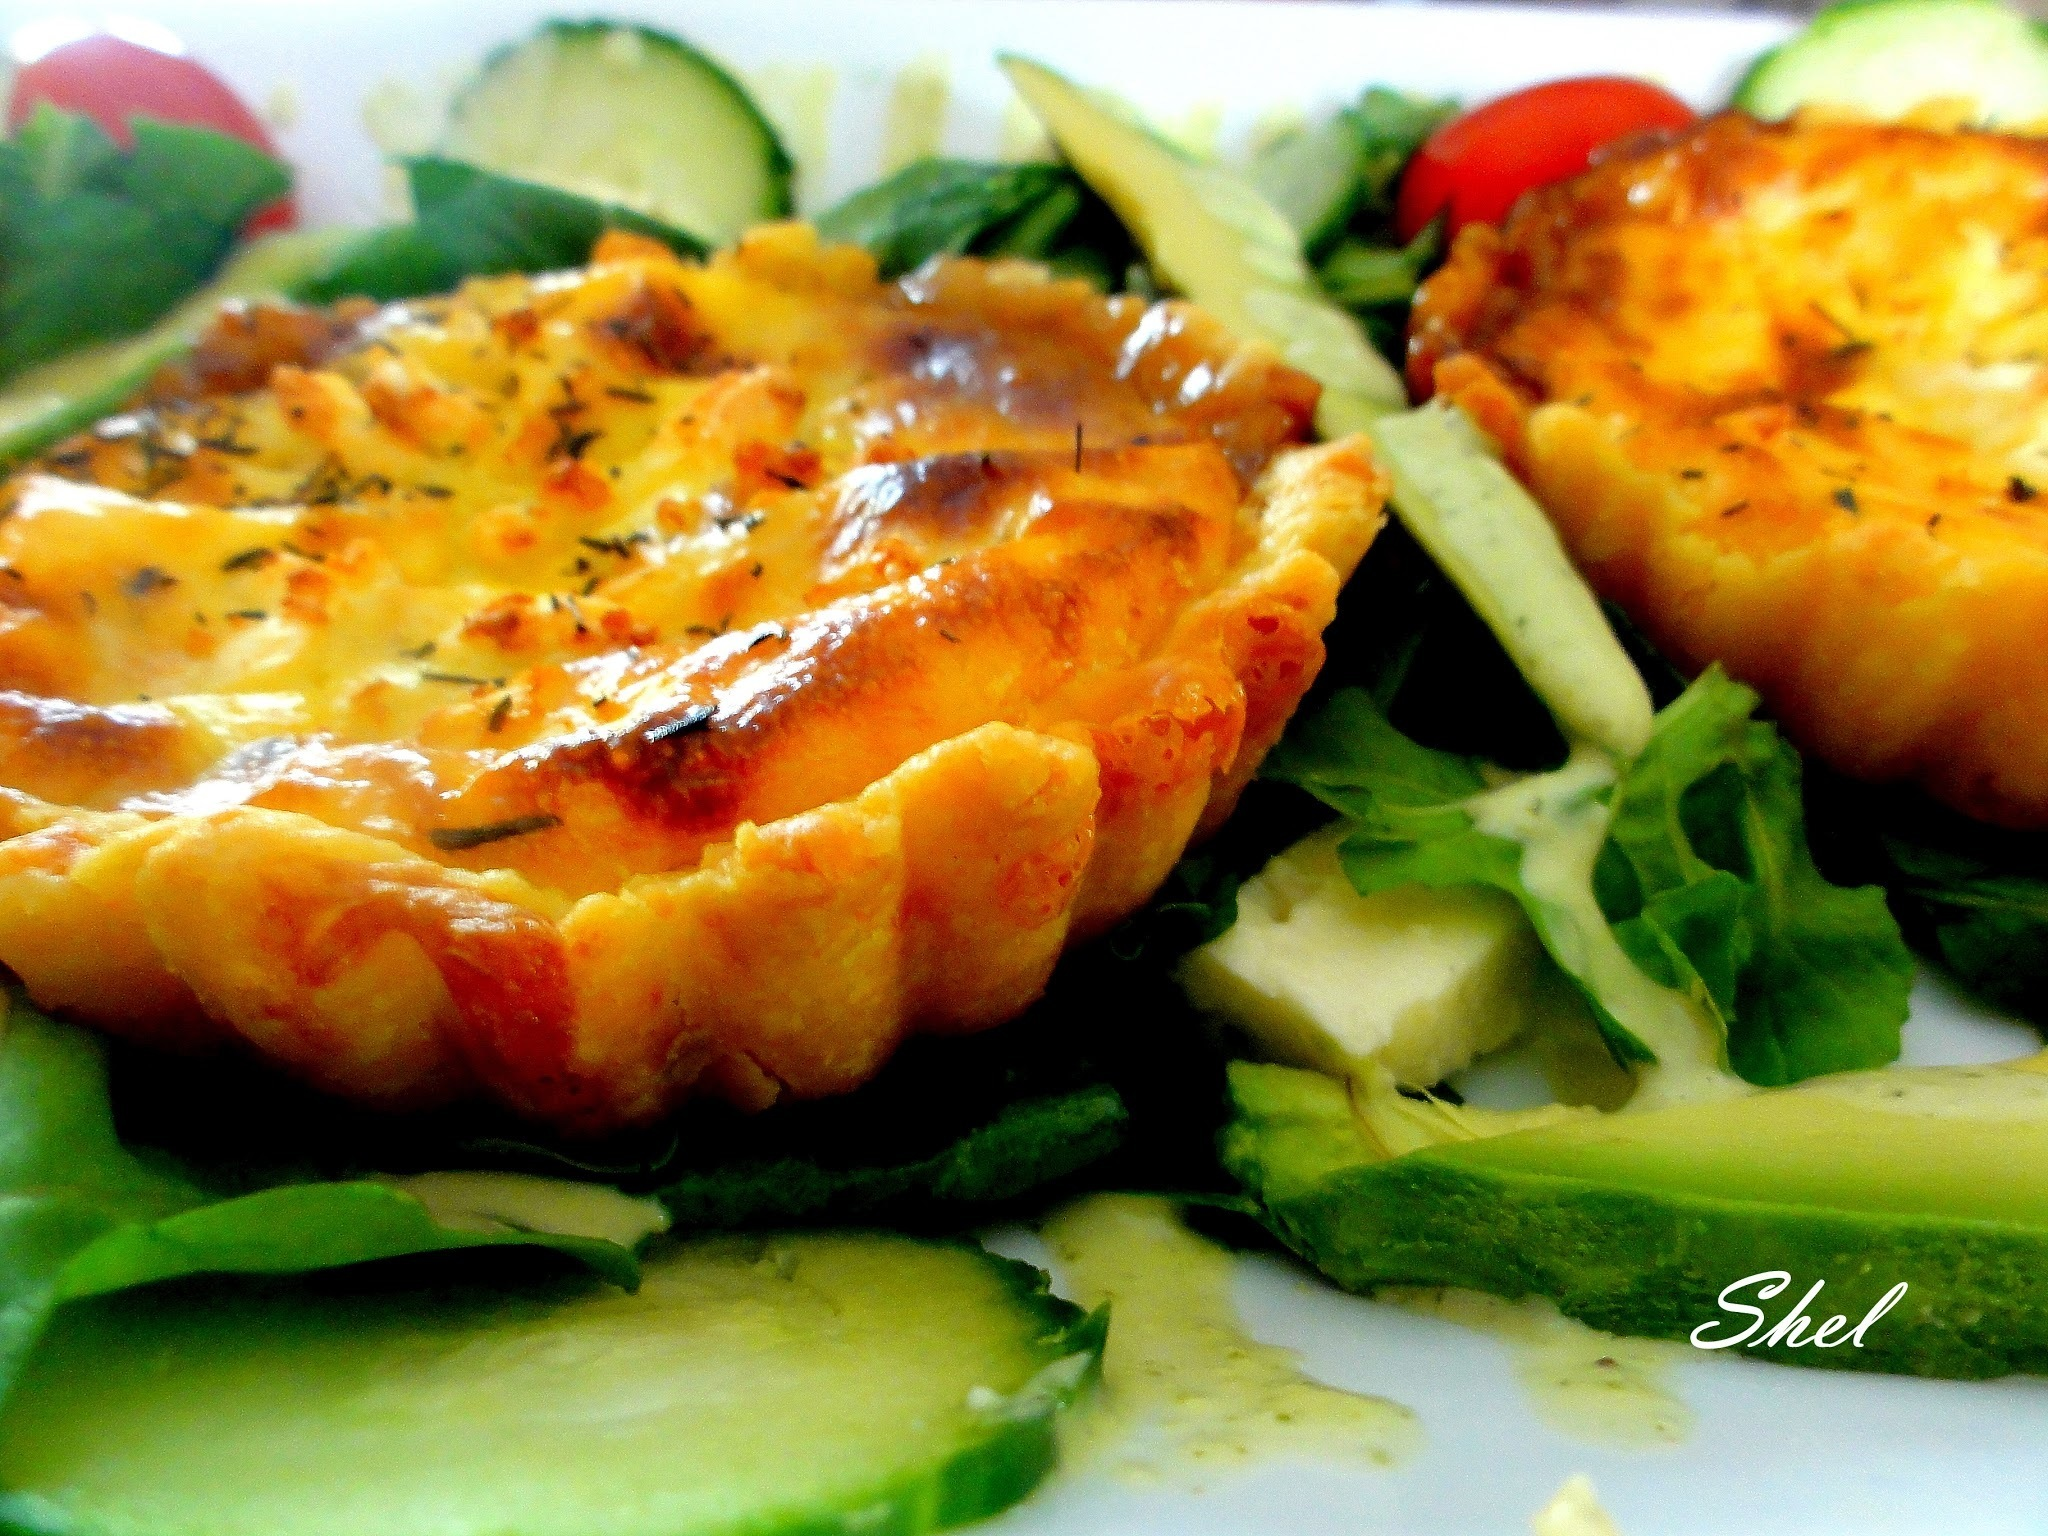 Caramelised onion marmalade and bacon quiche